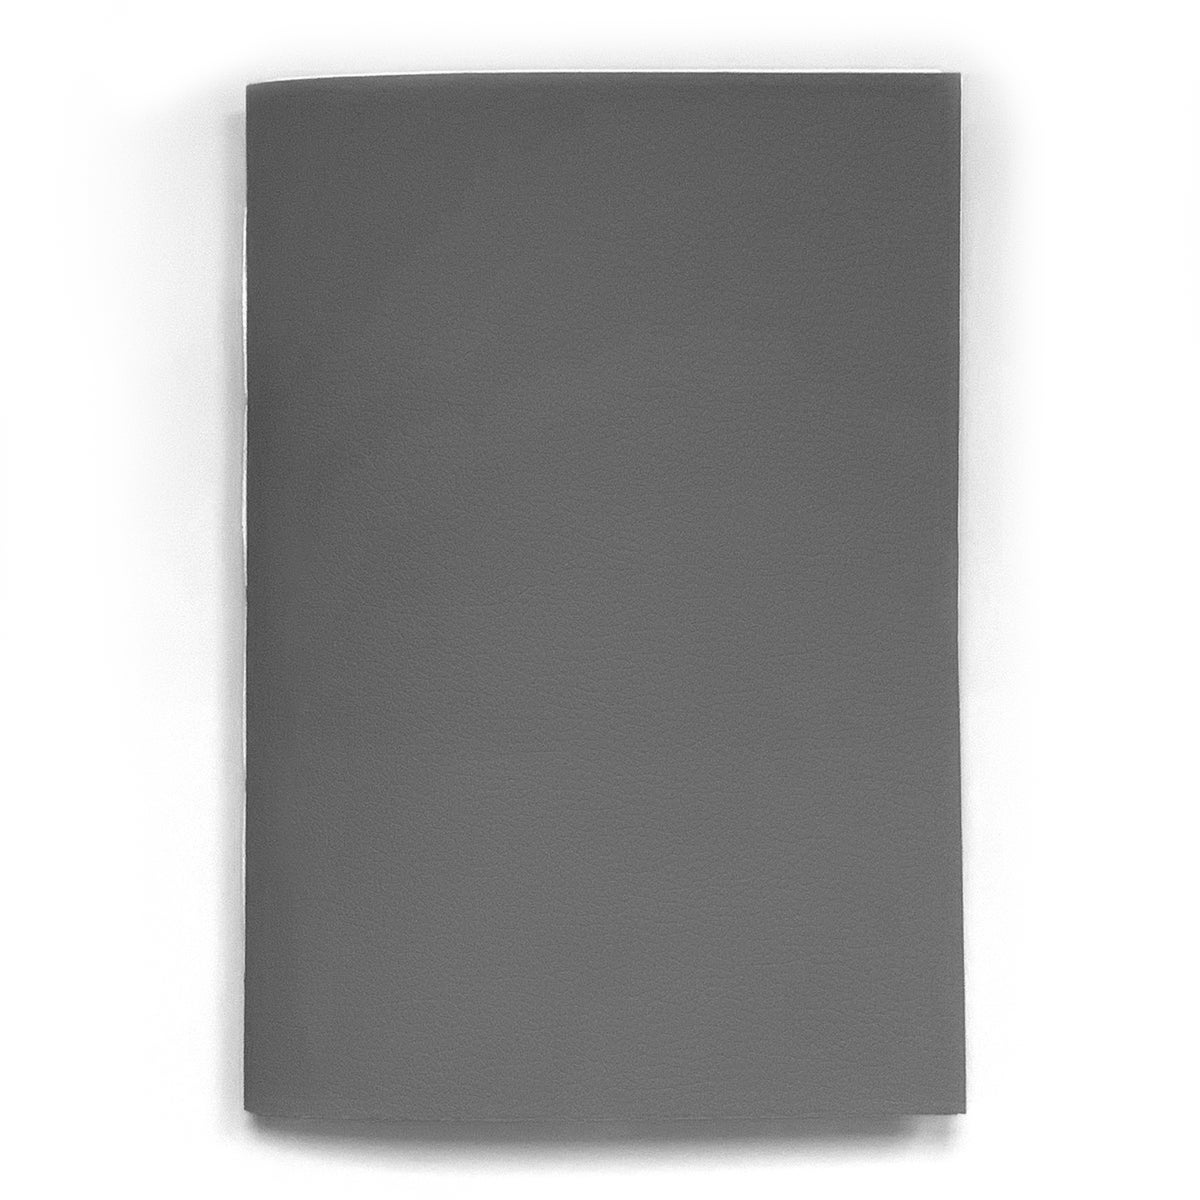 Image of vegan leather notebook – grey